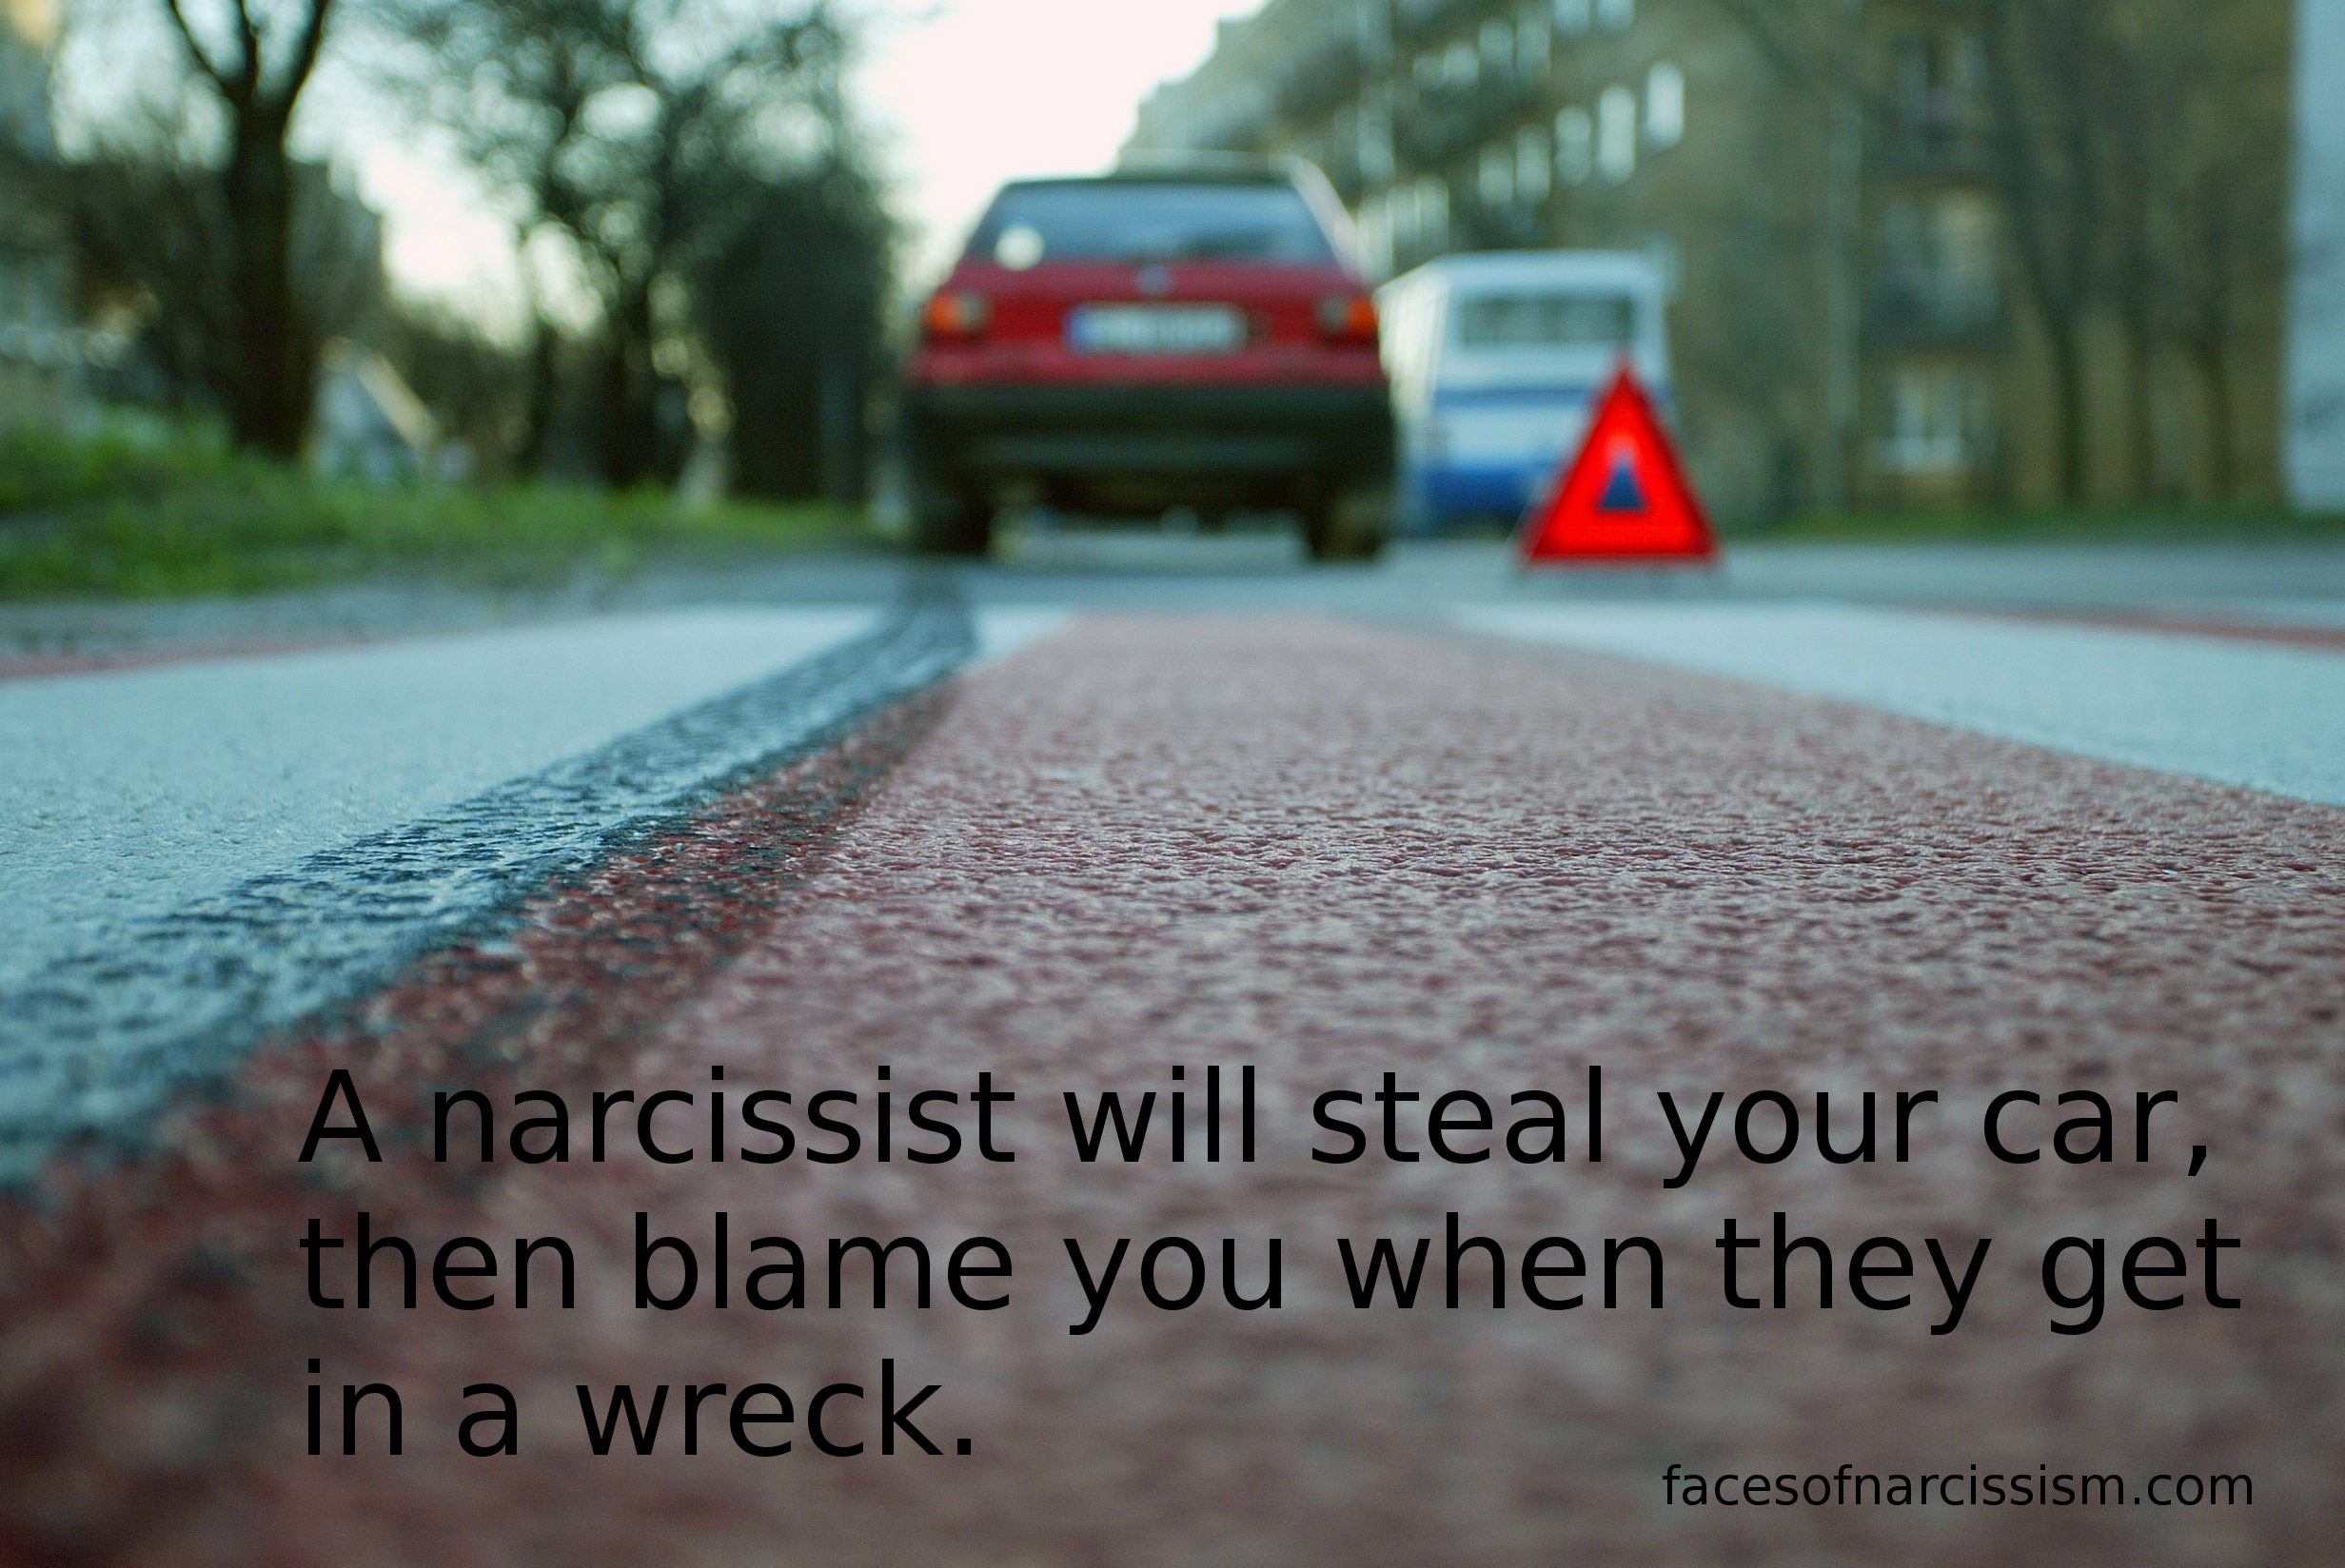 How humanity and cognitive biases allow narcissists to manipulate